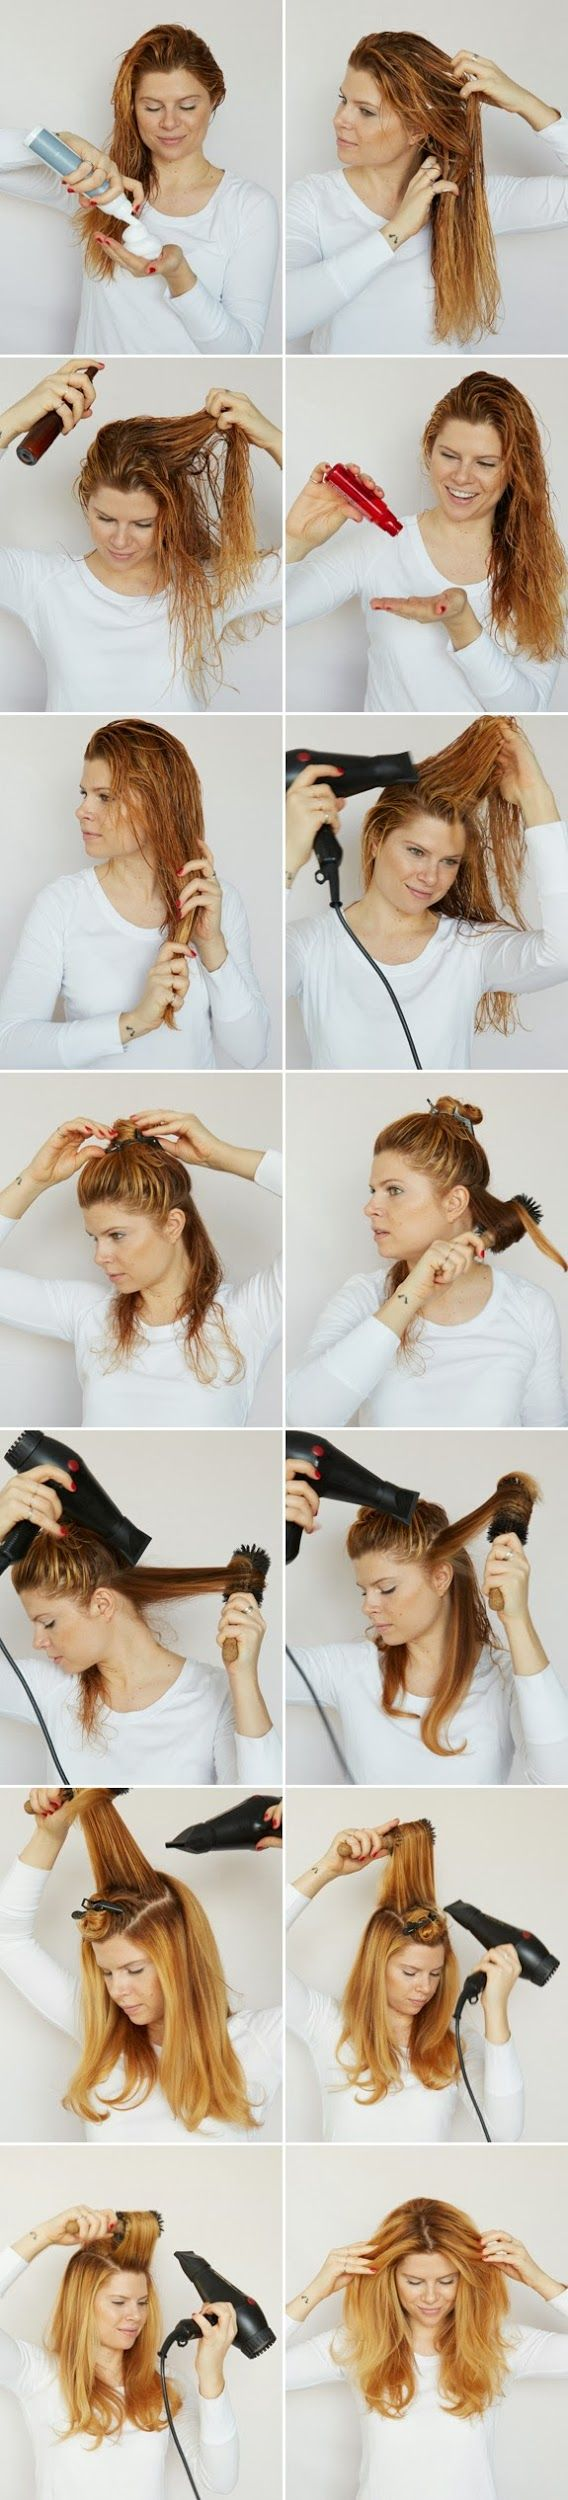 Wondrous 1000 Ideas About Blow Drying Hair On Pinterest Hair Steps Hairstyle Inspiration Daily Dogsangcom